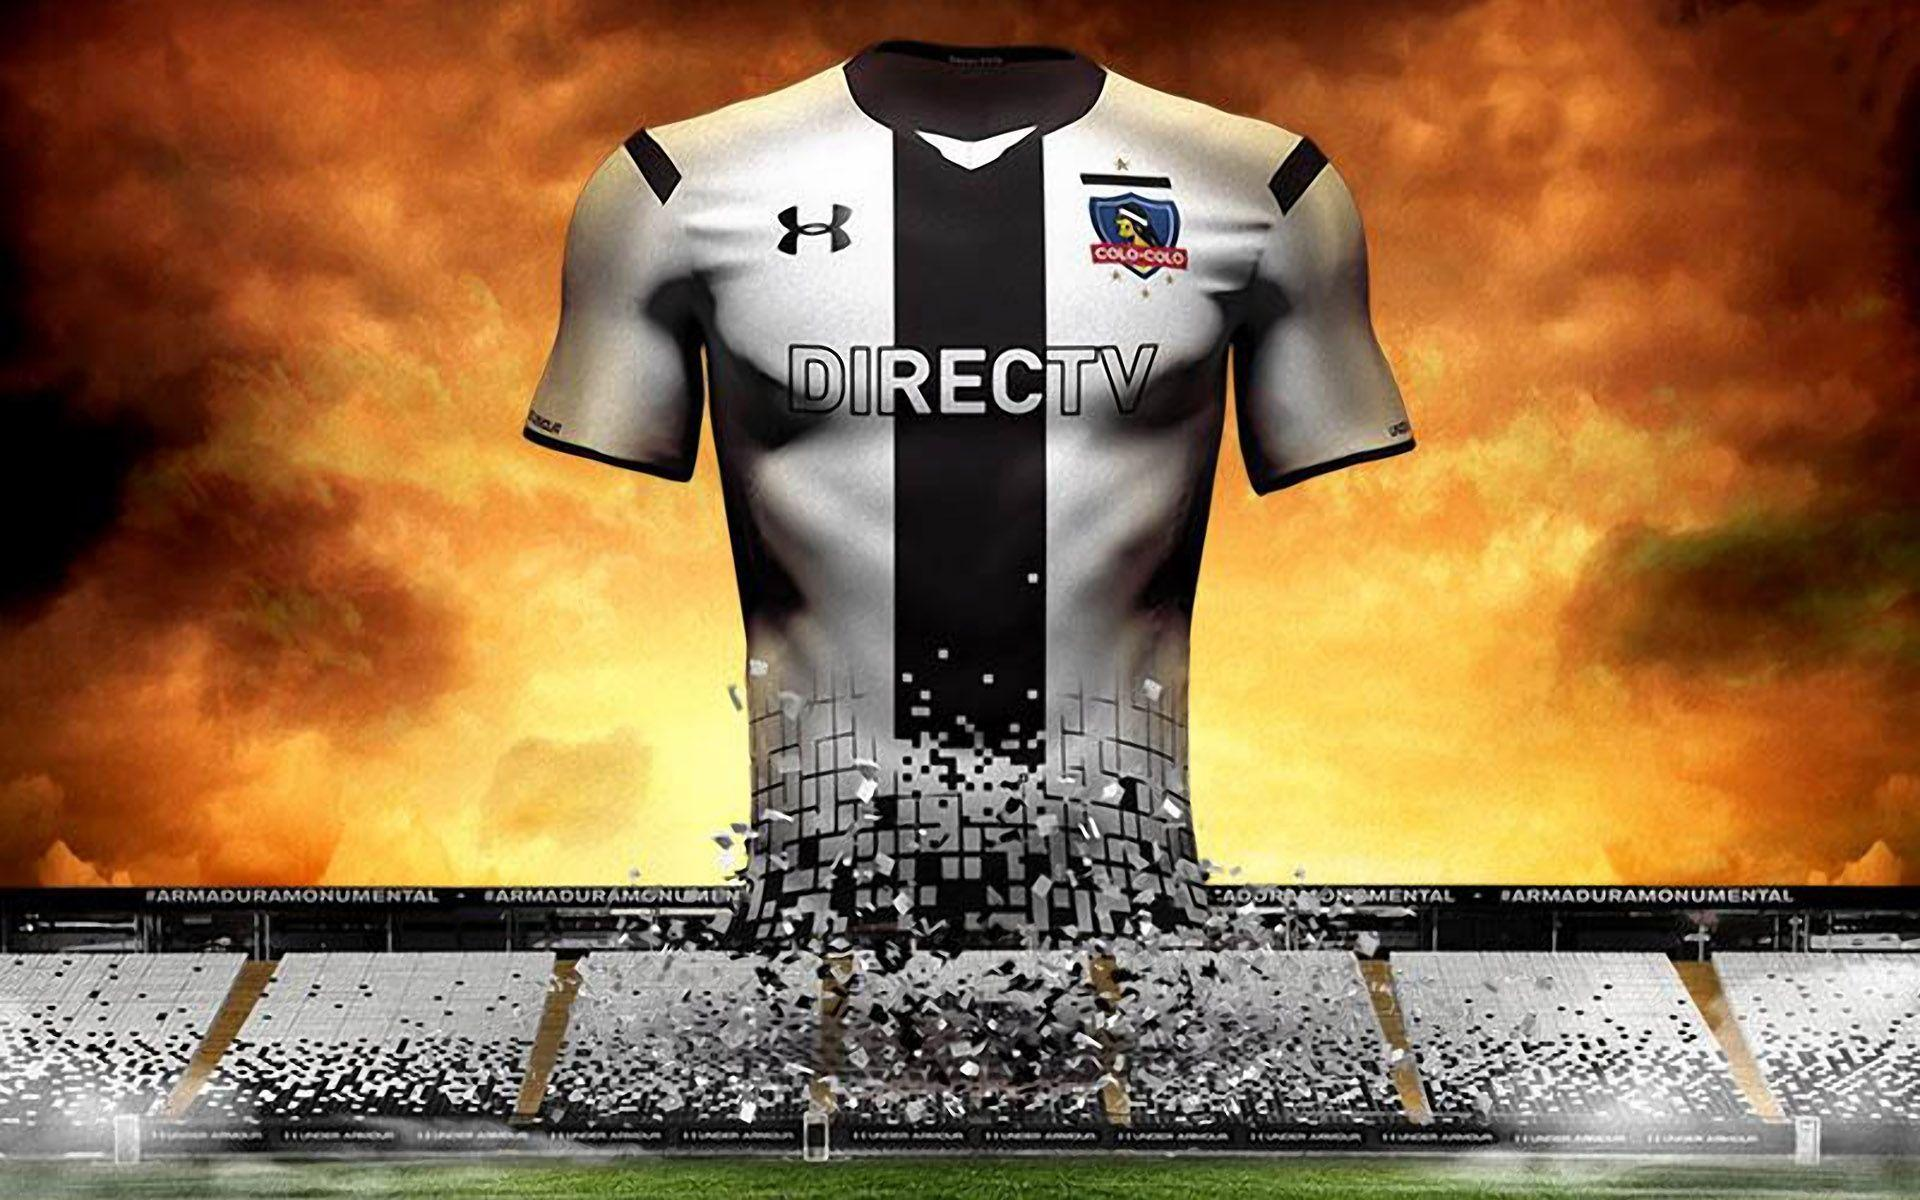 Colo-Colo 2015 Under Armour Home Jersey Wallpaper Wide or HD ...